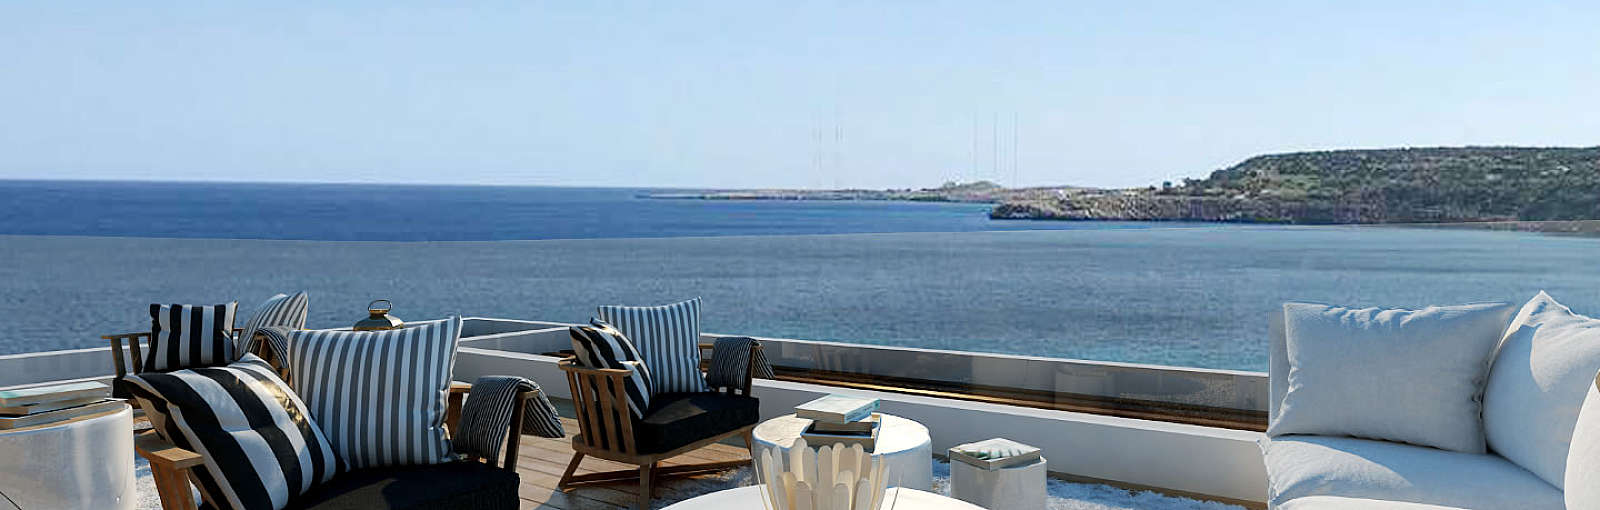 "<span class=""numbers"">5</span> Bed­room Detached Lux­u­ry Sea Front Villa/​Cape&nbsp;Greco"